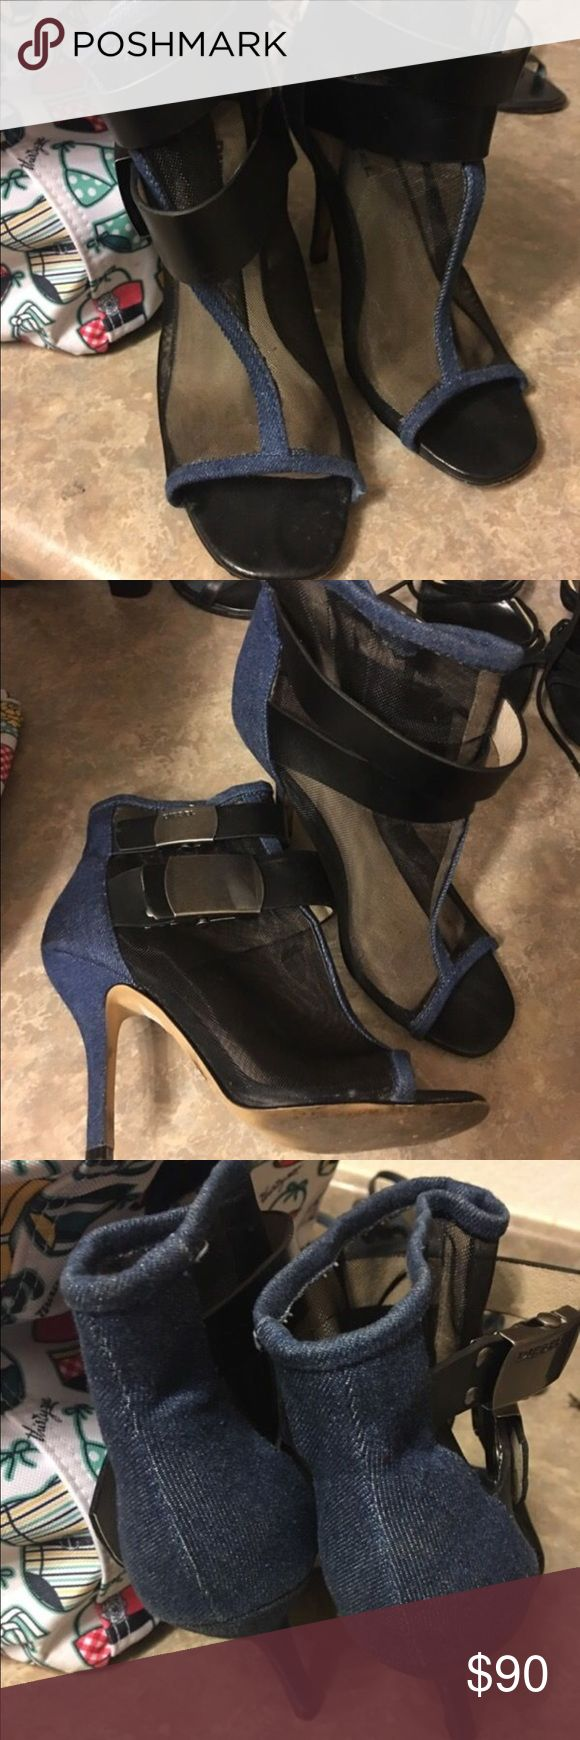 Diesel Denim & Mesh Bootie Heels Diesel buckle up Mesh and Denim Booties in women's size 6.5 and I'm a 7, fits both.          Paid $325 last year Diesel Shoes Ankle Boots & Booties